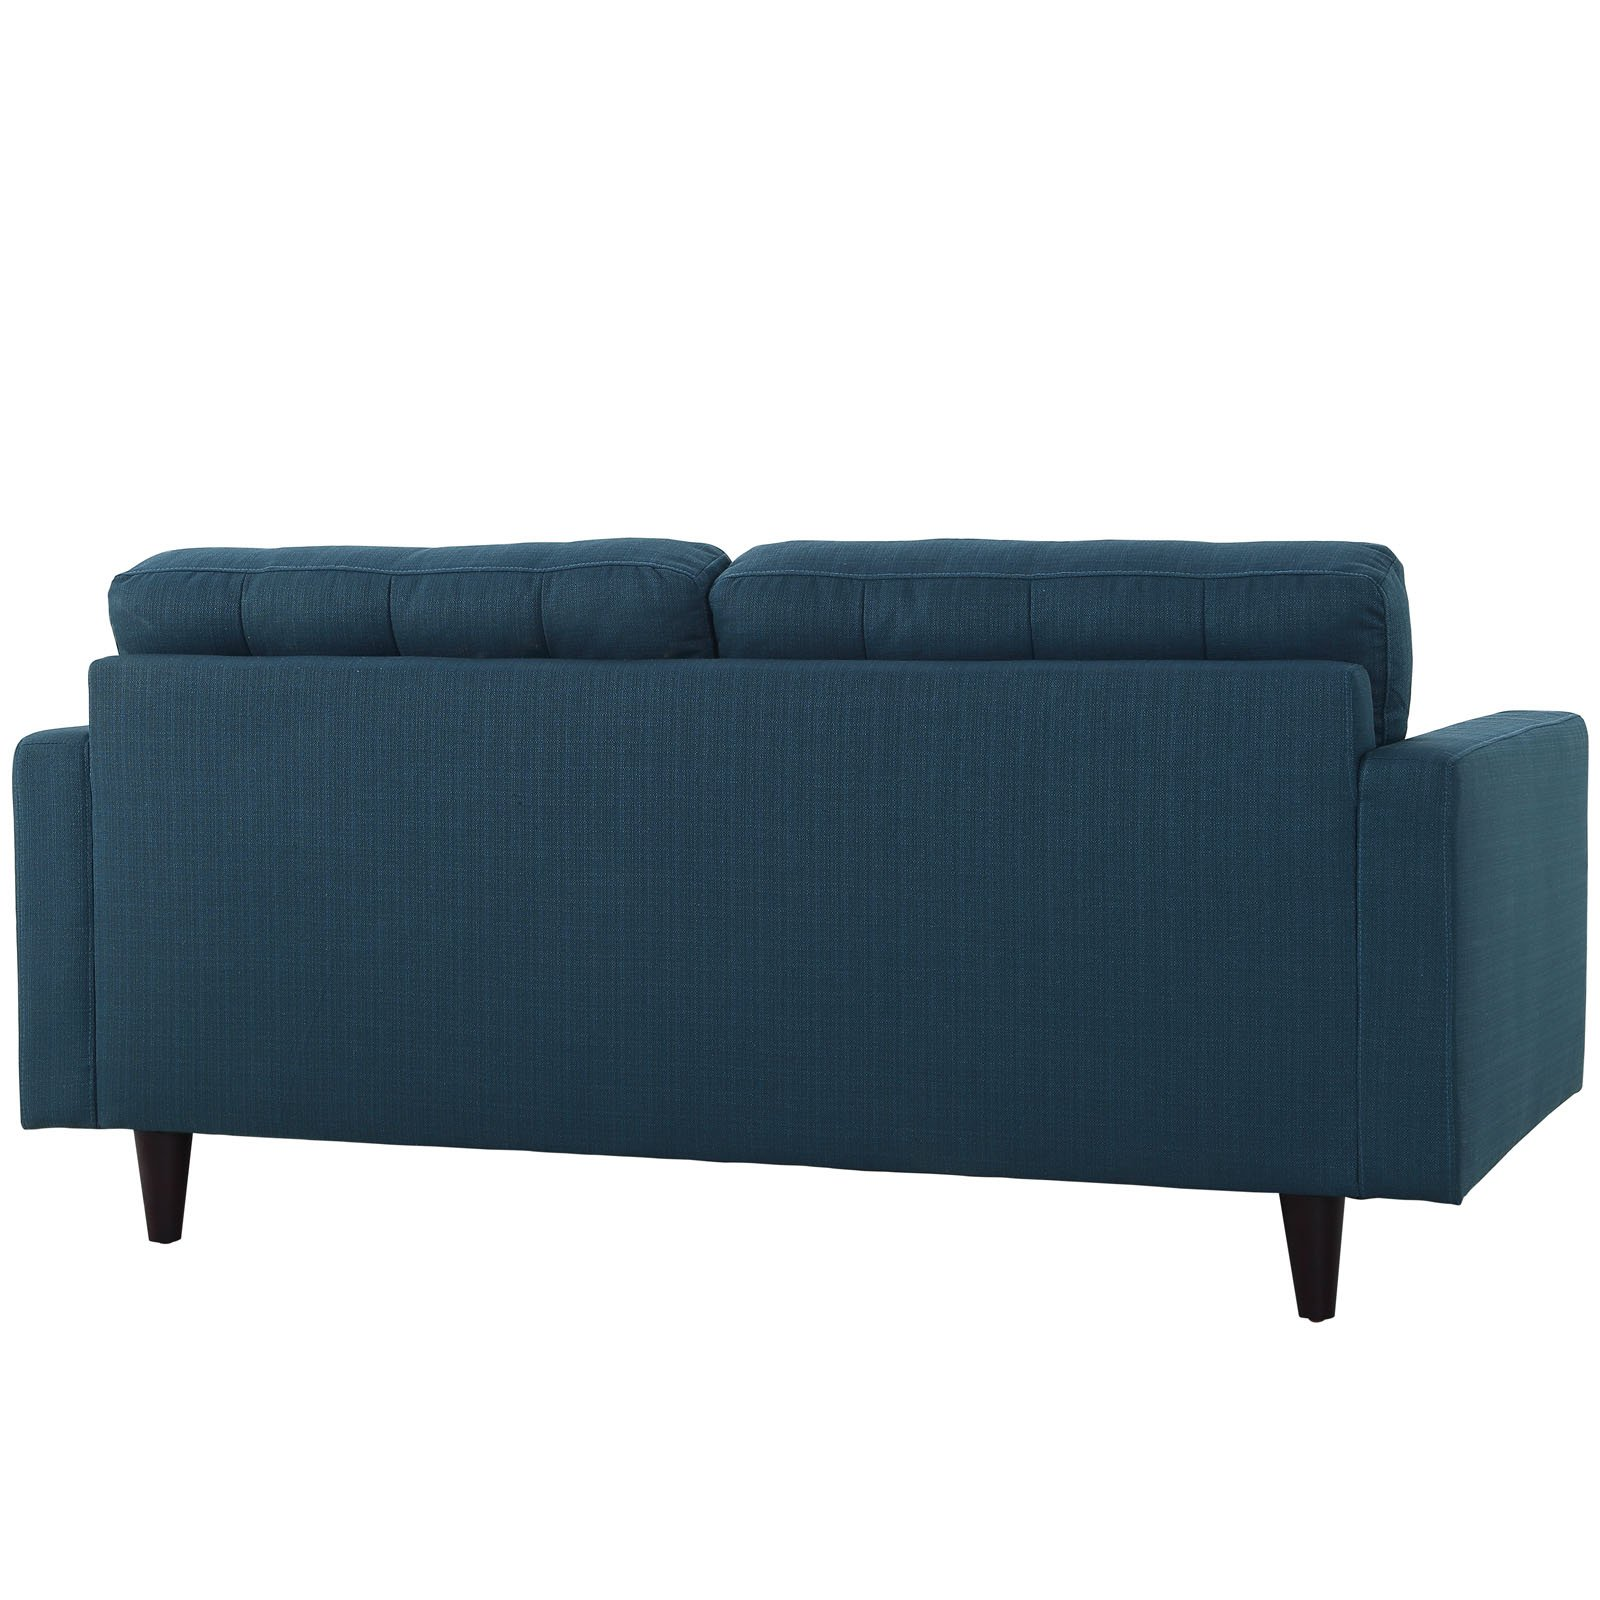 Modway Empress Mid-Century Modern Upholstered Fabric Loveseat In Azure by Modway (Image #4)